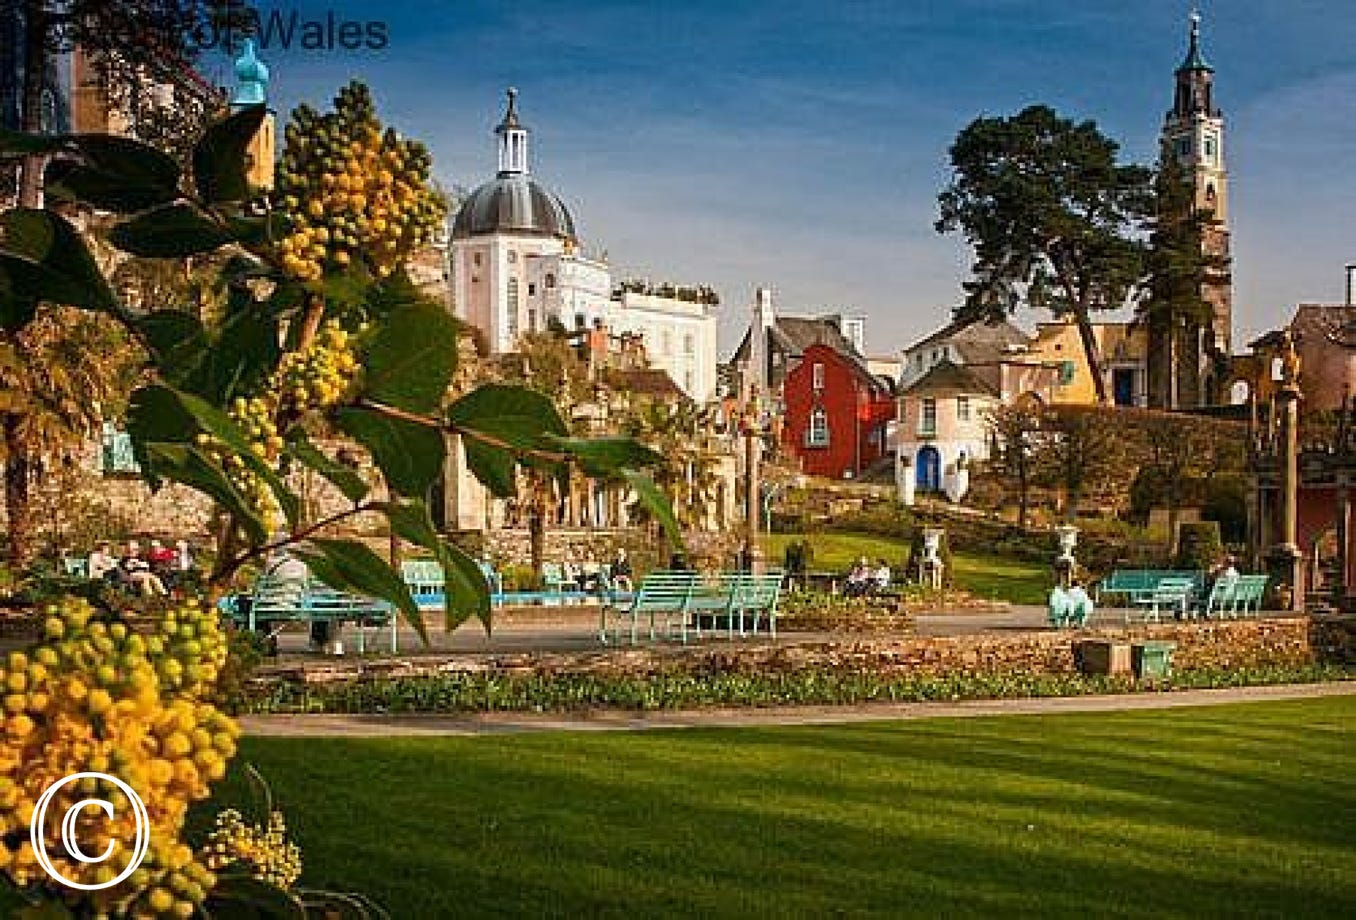 The classic Italian village and gardens of Portmeirion (10 miles)